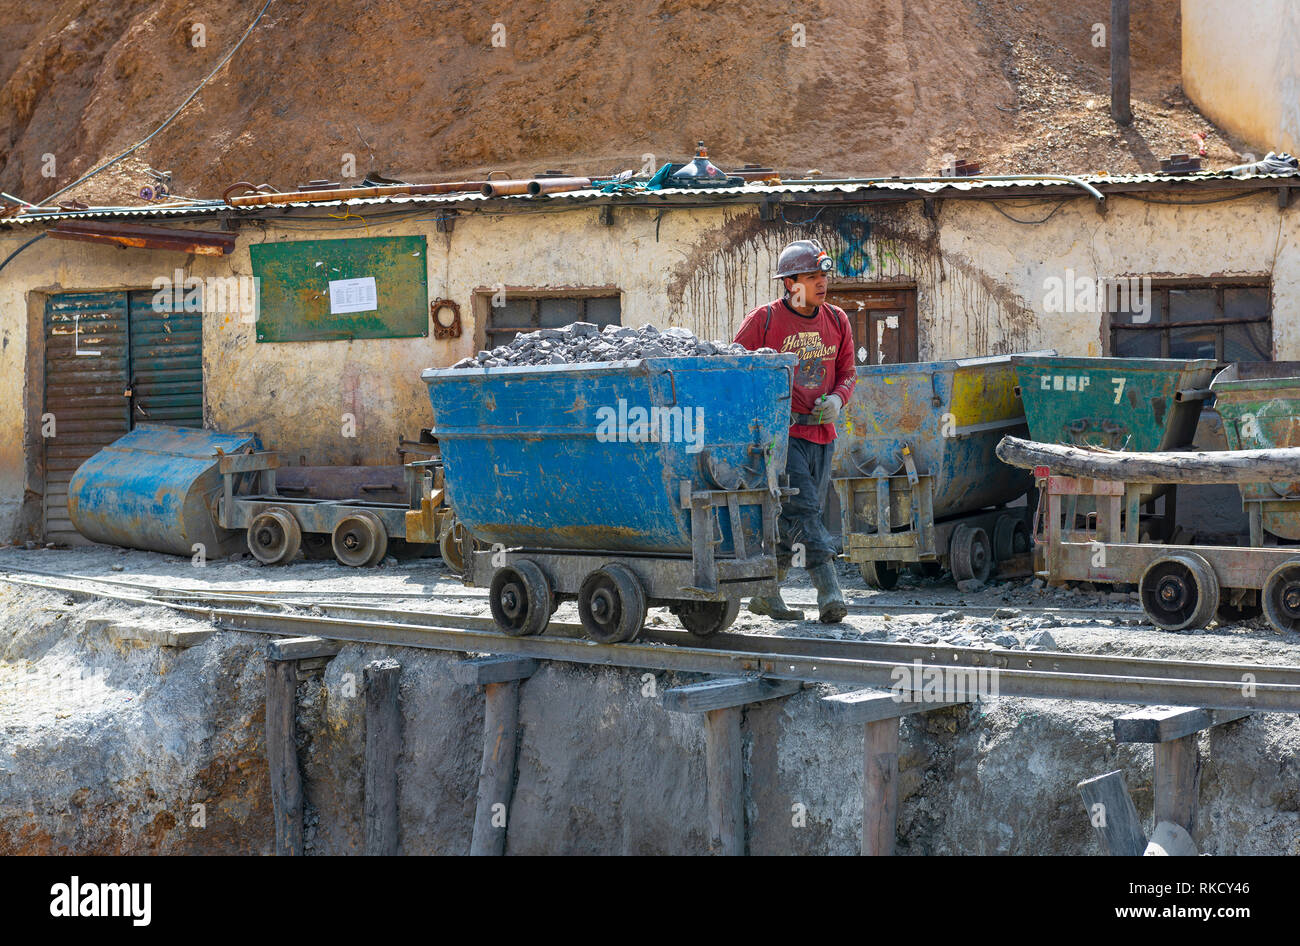 A bolivian miner with a carriage filled with rocks containing silver by a mine shaft of the Cerro Rico in the city of Potosi, Bolivia. - Stock Image